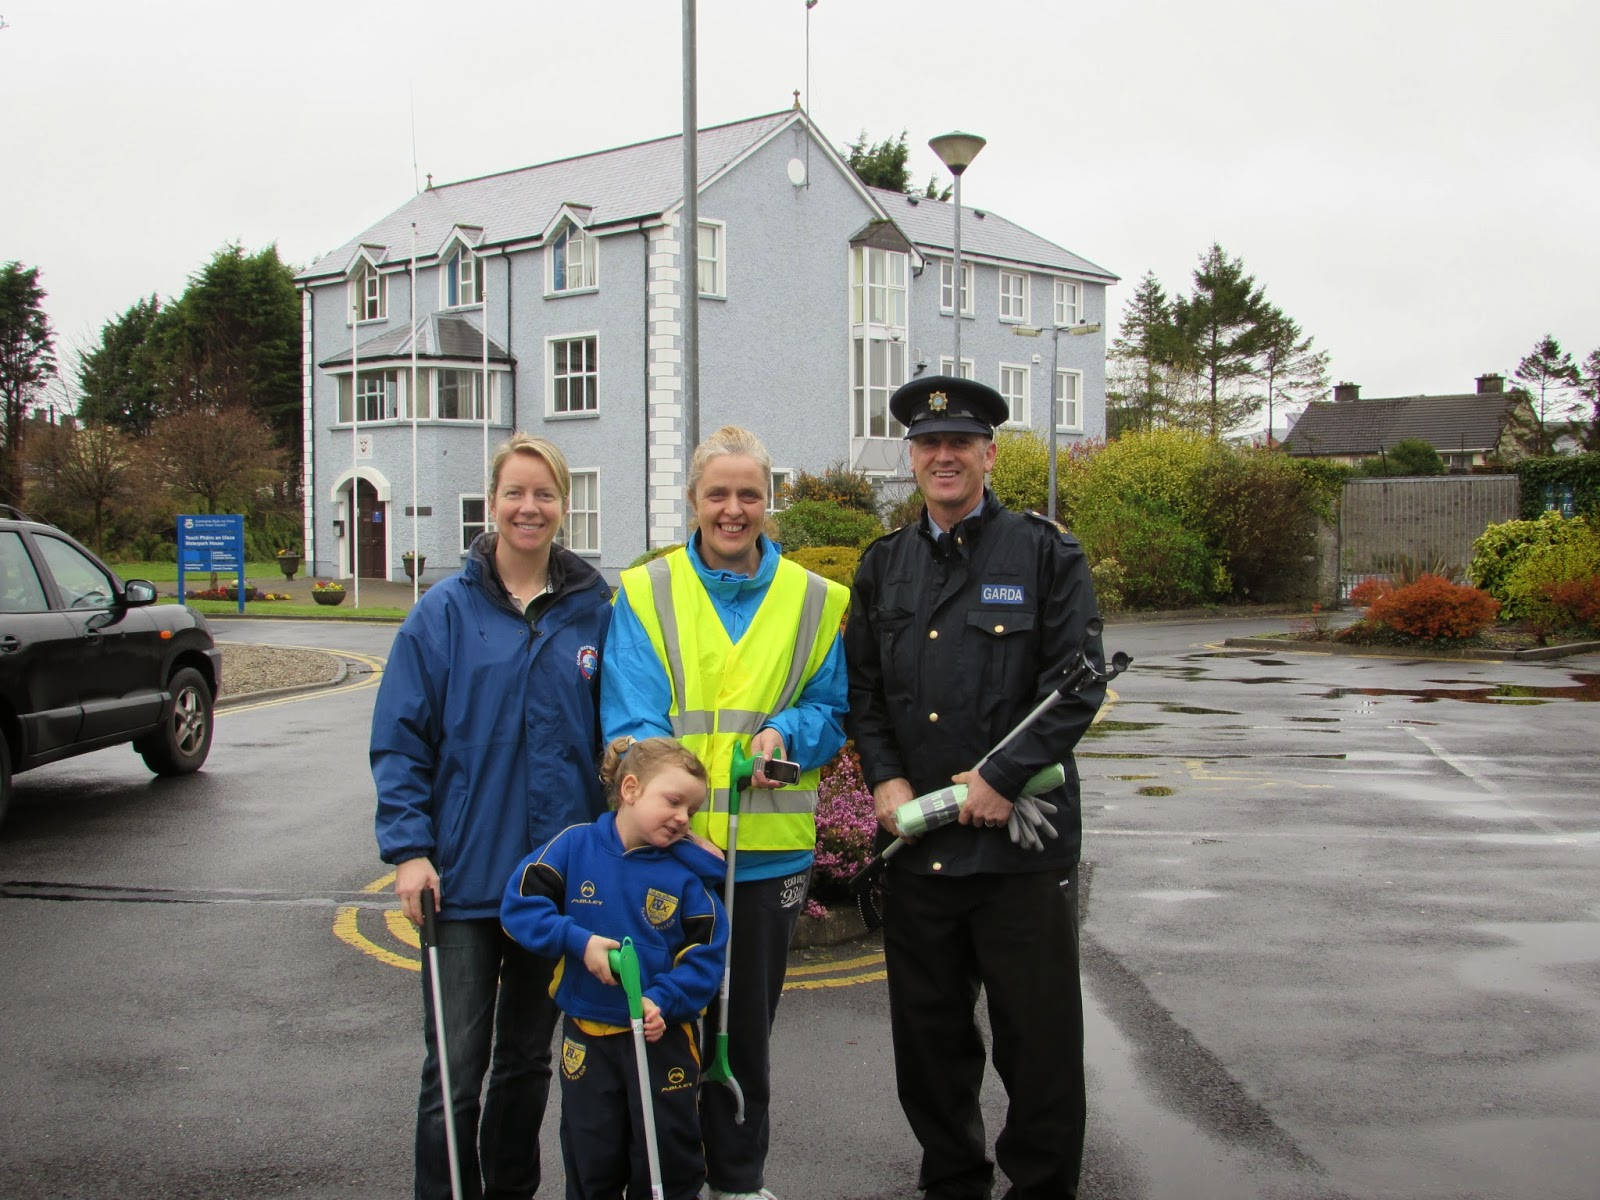 Ennis community groups take part in Spring Clean event